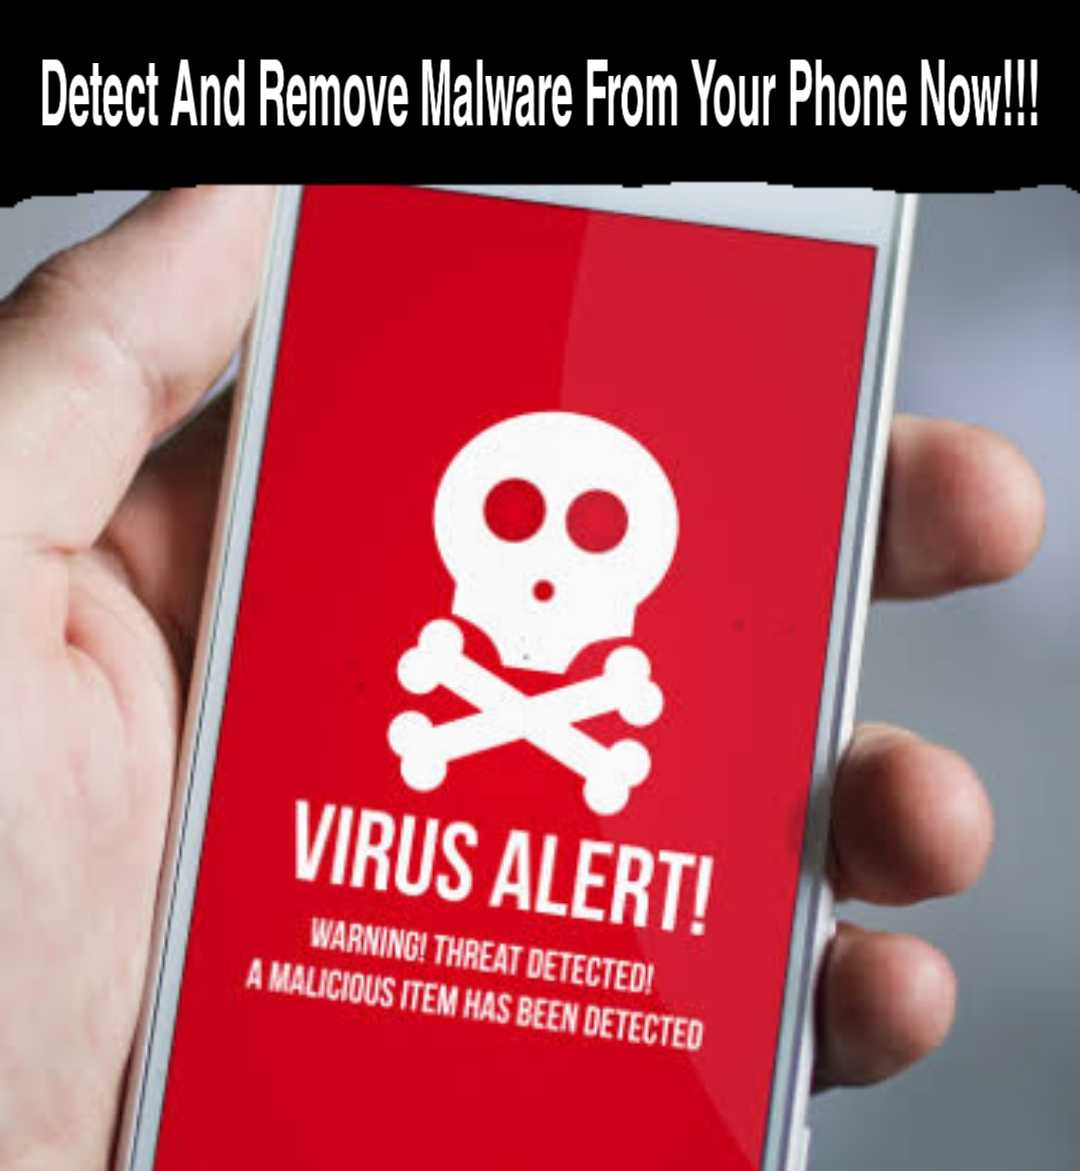 ANDROID MALWARE, How to detect and remove malware from Android